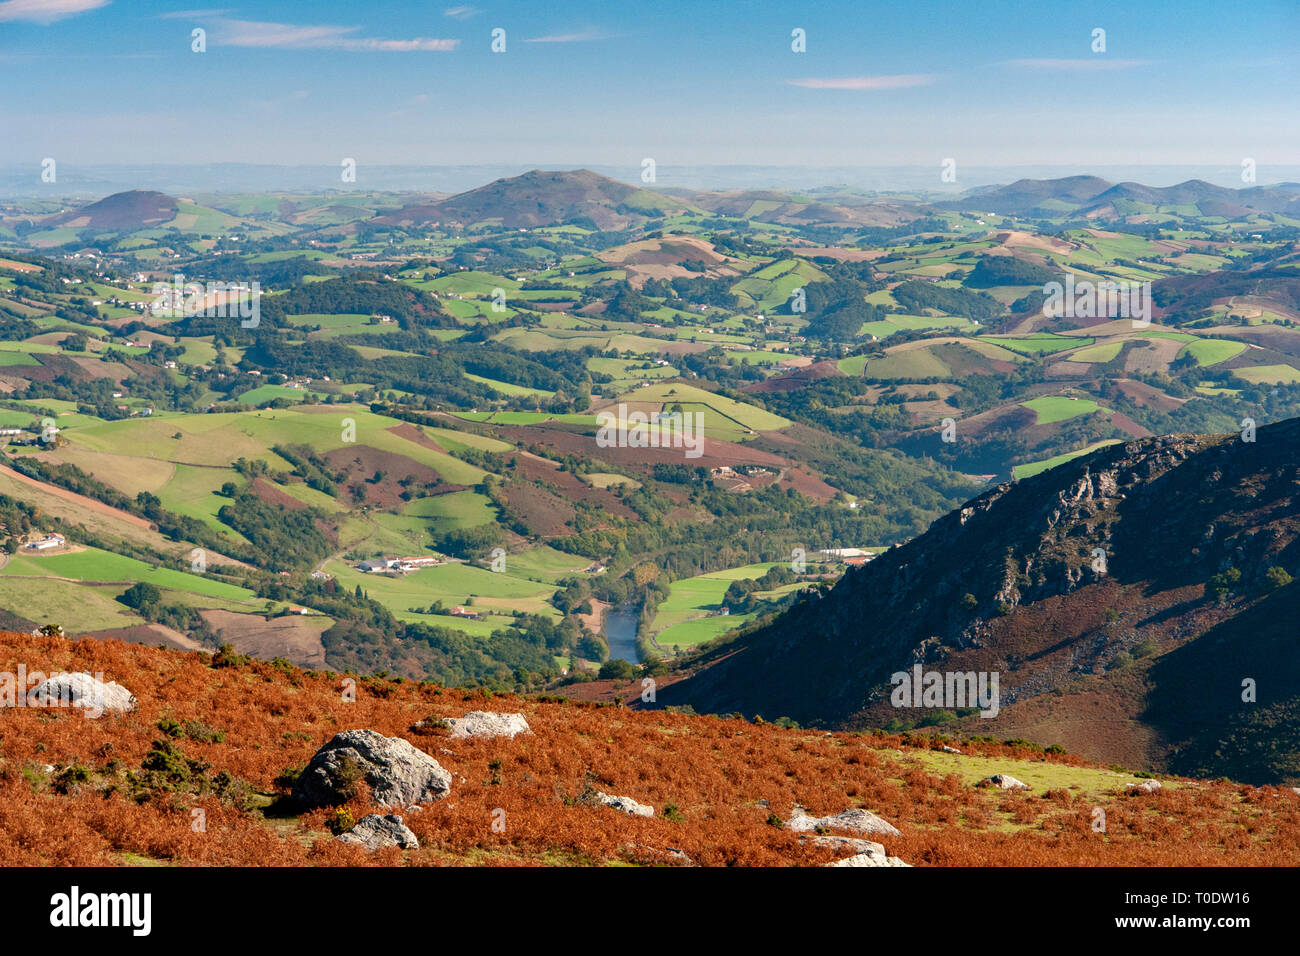 In Autumn, a view of a part of the French Basque country hinterland seen from the vantage point of Mount Mondarrain (2,457 feet). - Stock Image